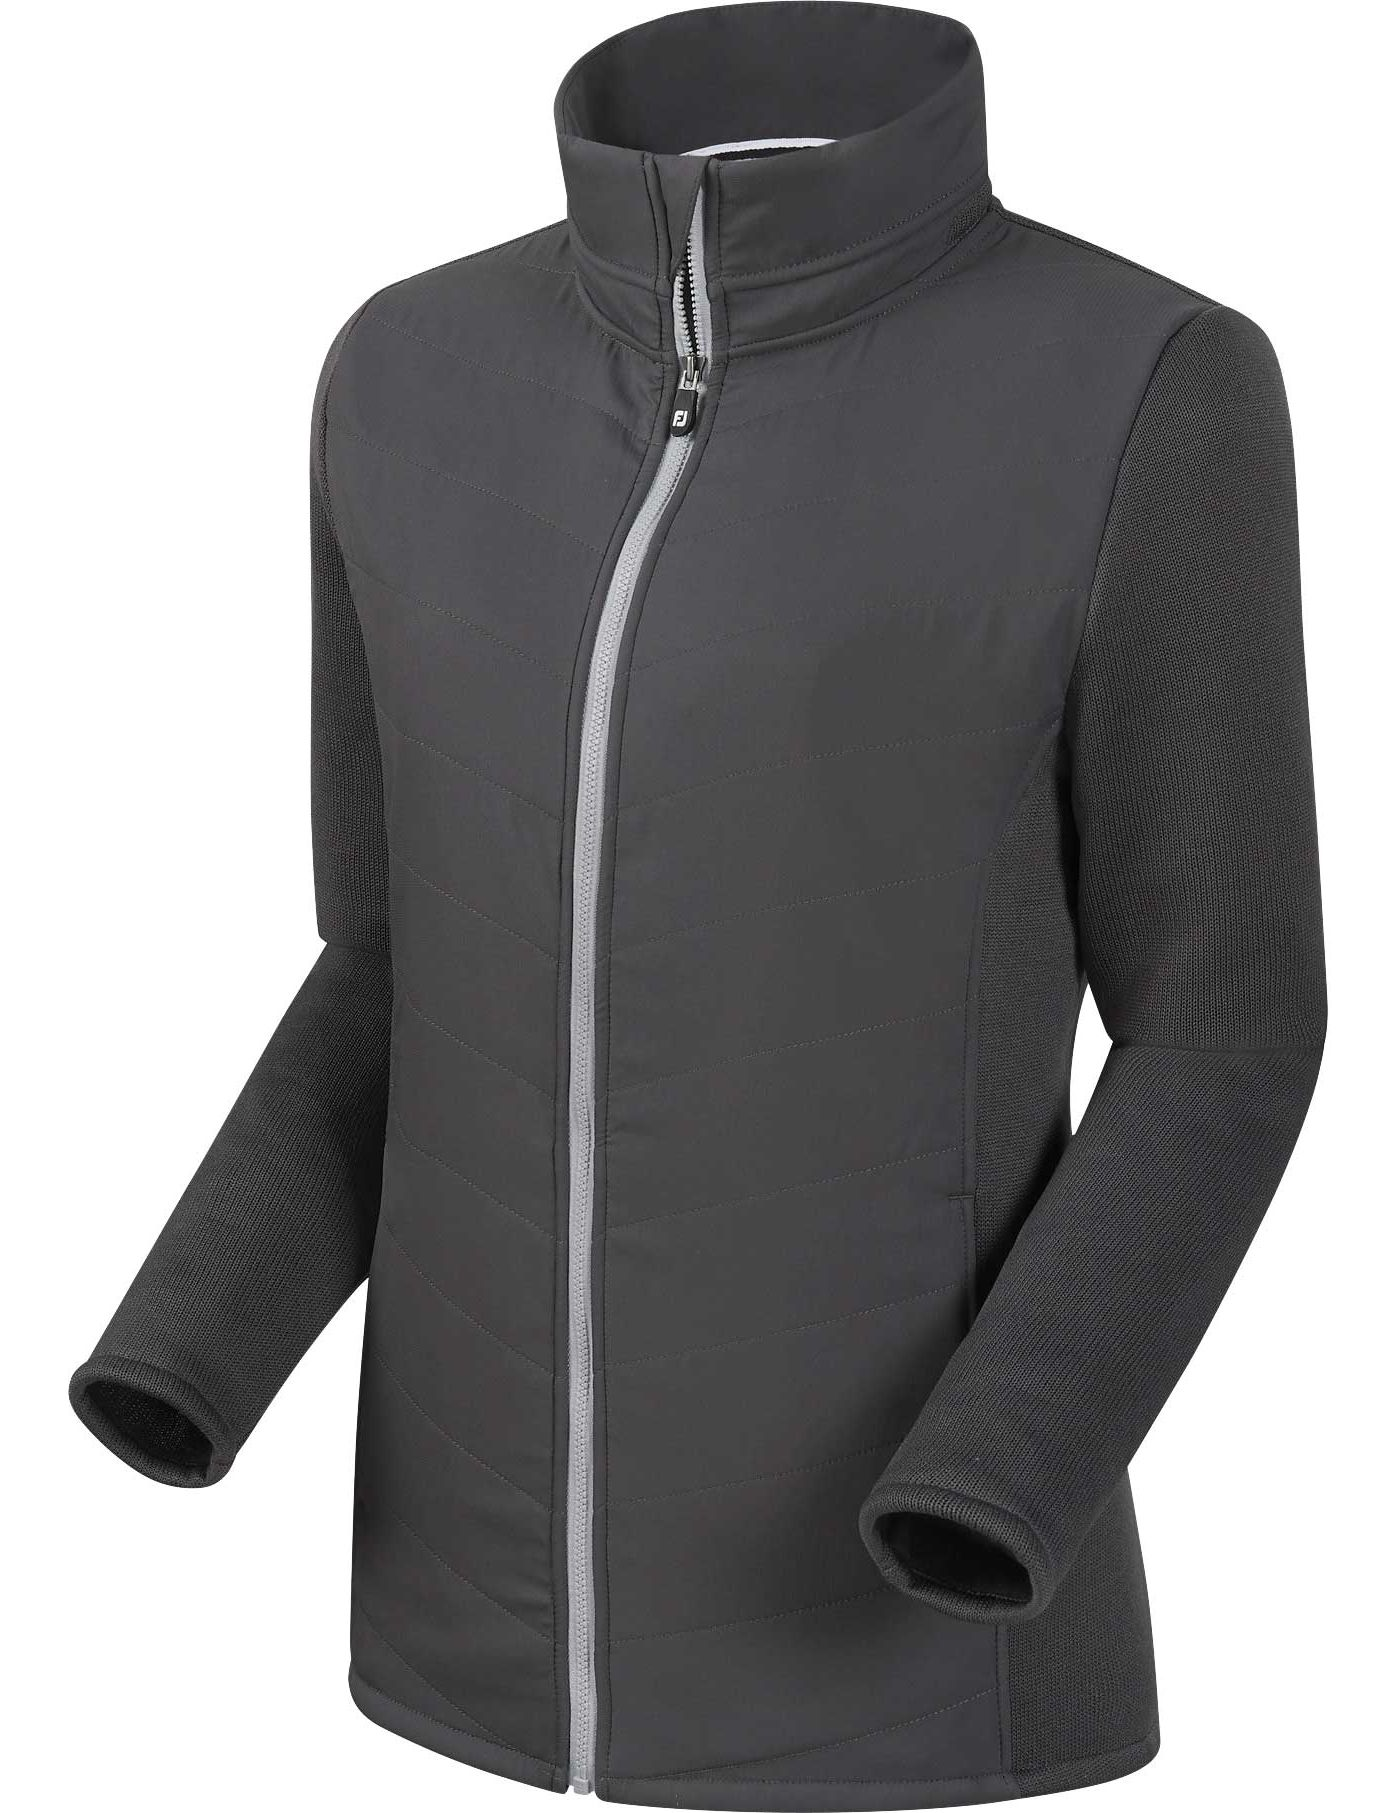 FootJoy Women's Full-Zip Quilted Hybrid Golf Jacket